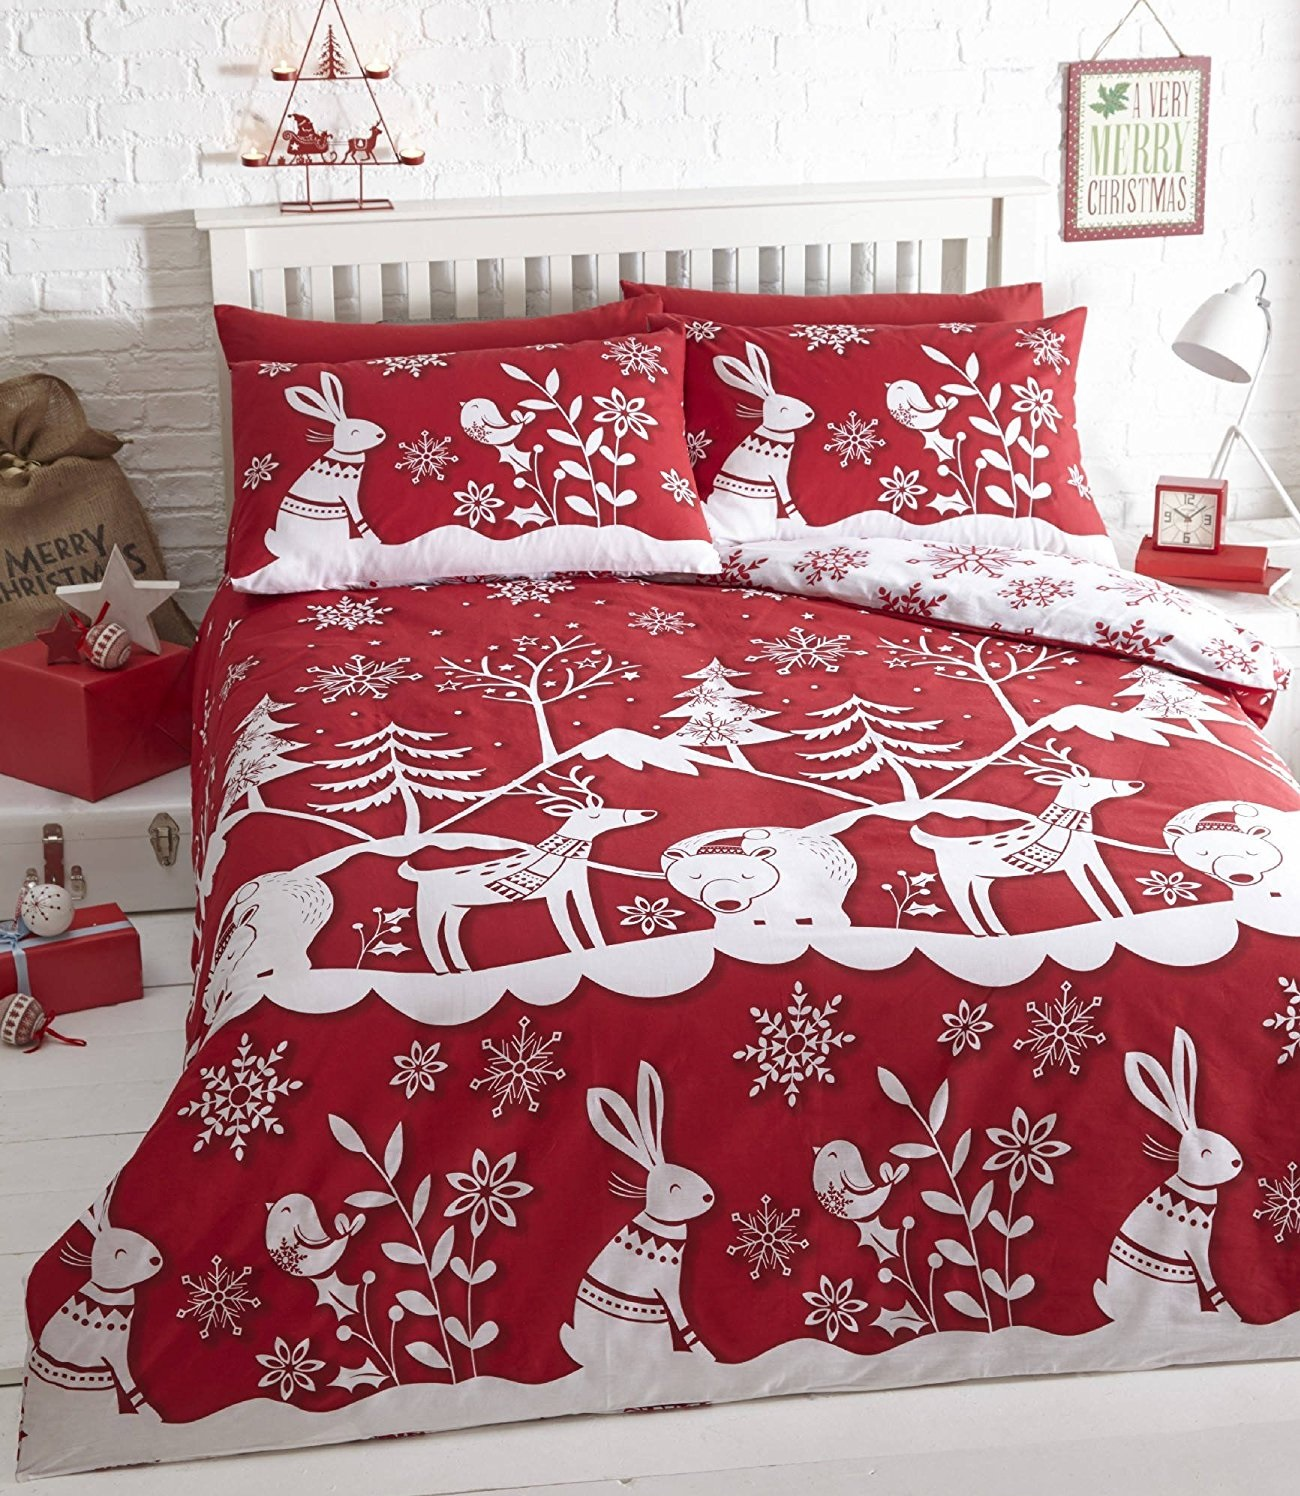 chair covers at christmas tree shop sun lounge father santa reindeer snowman quilt duvet